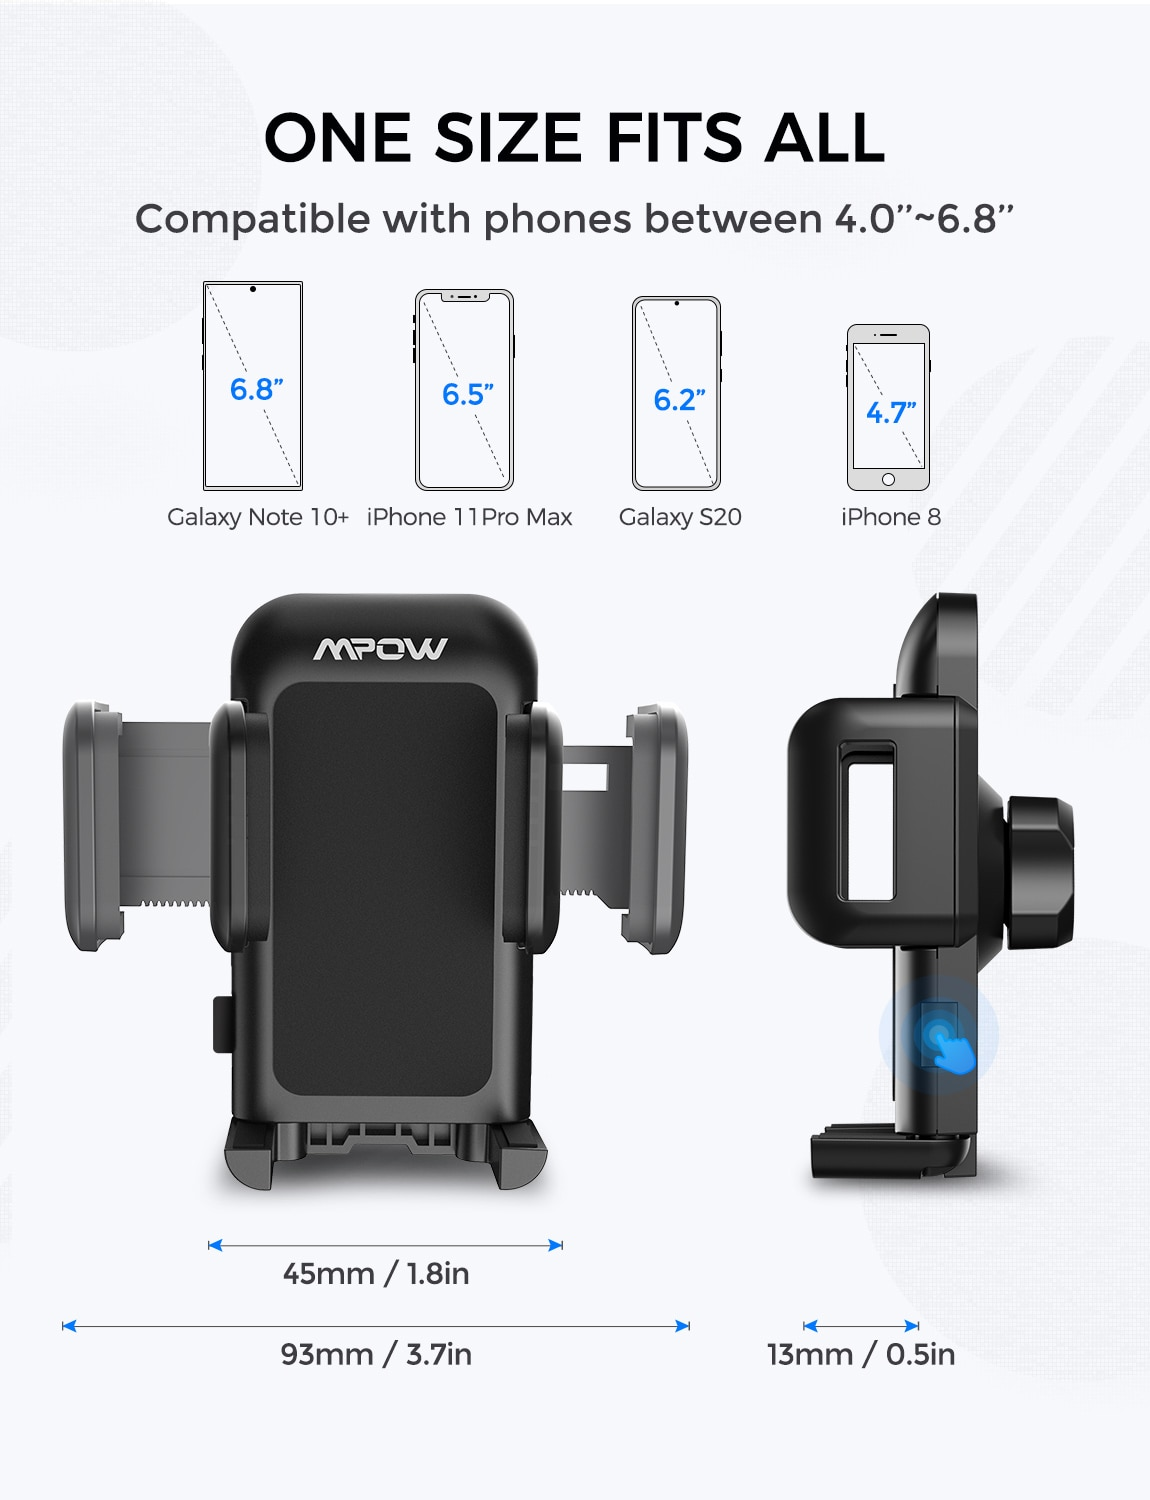 Hd78291e4668a4e7998e5c6c34ece8f0aC - Mpow MCM3 CD Slot Car Phone Holder Car Mount Holder Stand 360 Rotation Mobile Phone Holder Stand for iphone 12 XS Samsung Huawei